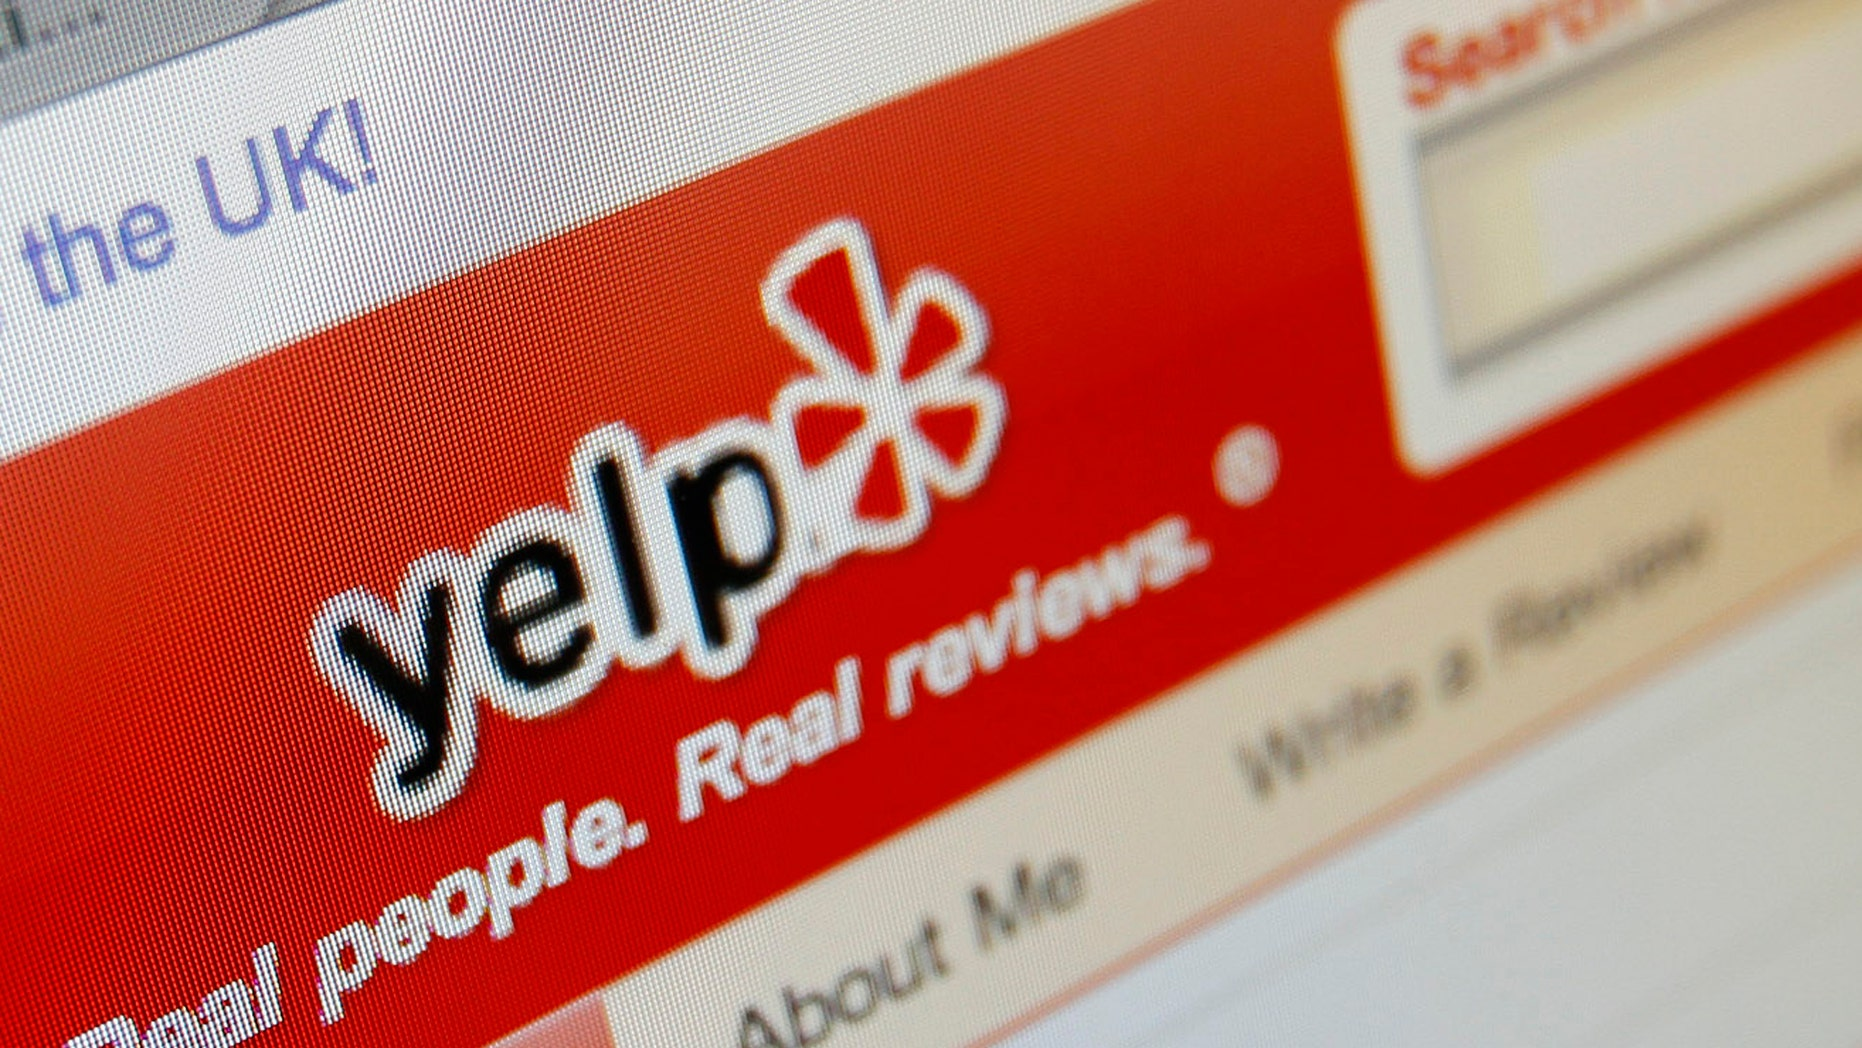 New York City health officials found unreported outbreaks of food poisoning by sifting through hundreds of thousands of comments on the popular website Yelp, according to a report released Thursday, May 22, 2014. (AP Photo/Richard Vogel, File)